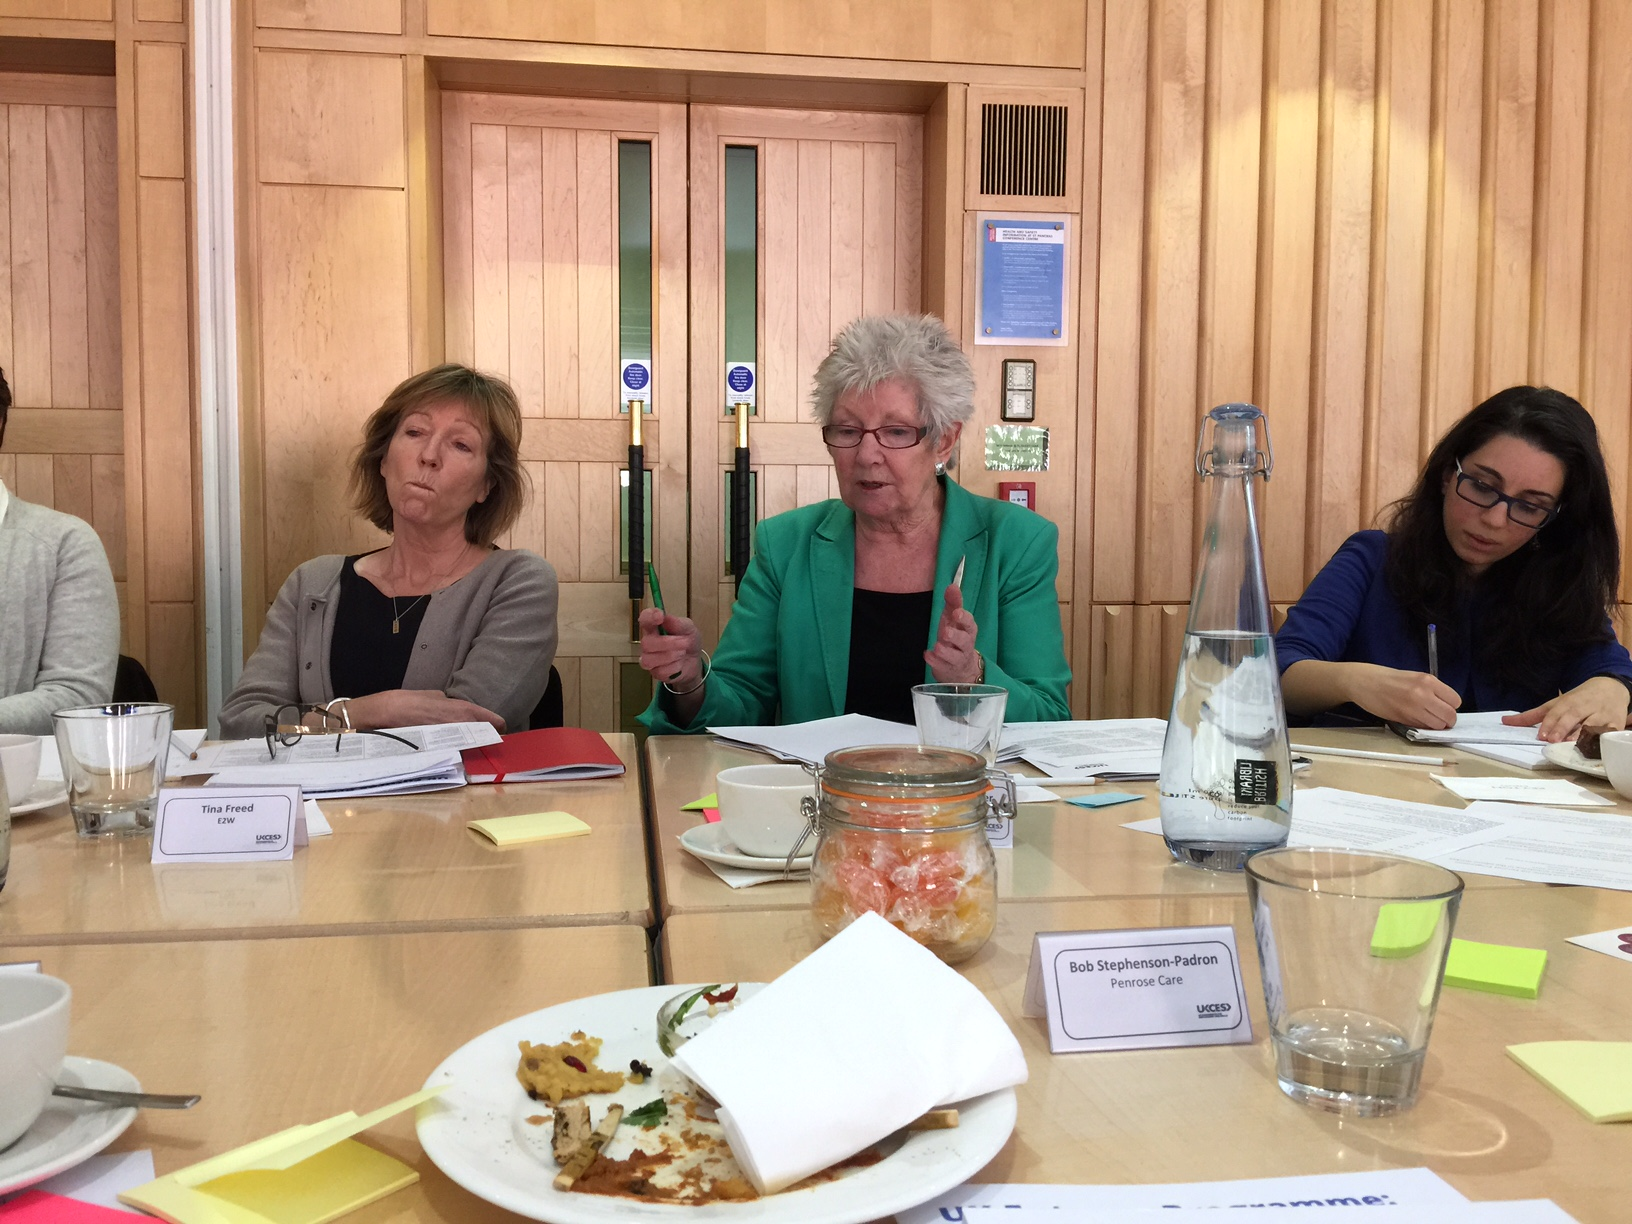 2015-03-31 (Penrose Care) Baroness Margaret Prosser UKCES Gender Equality